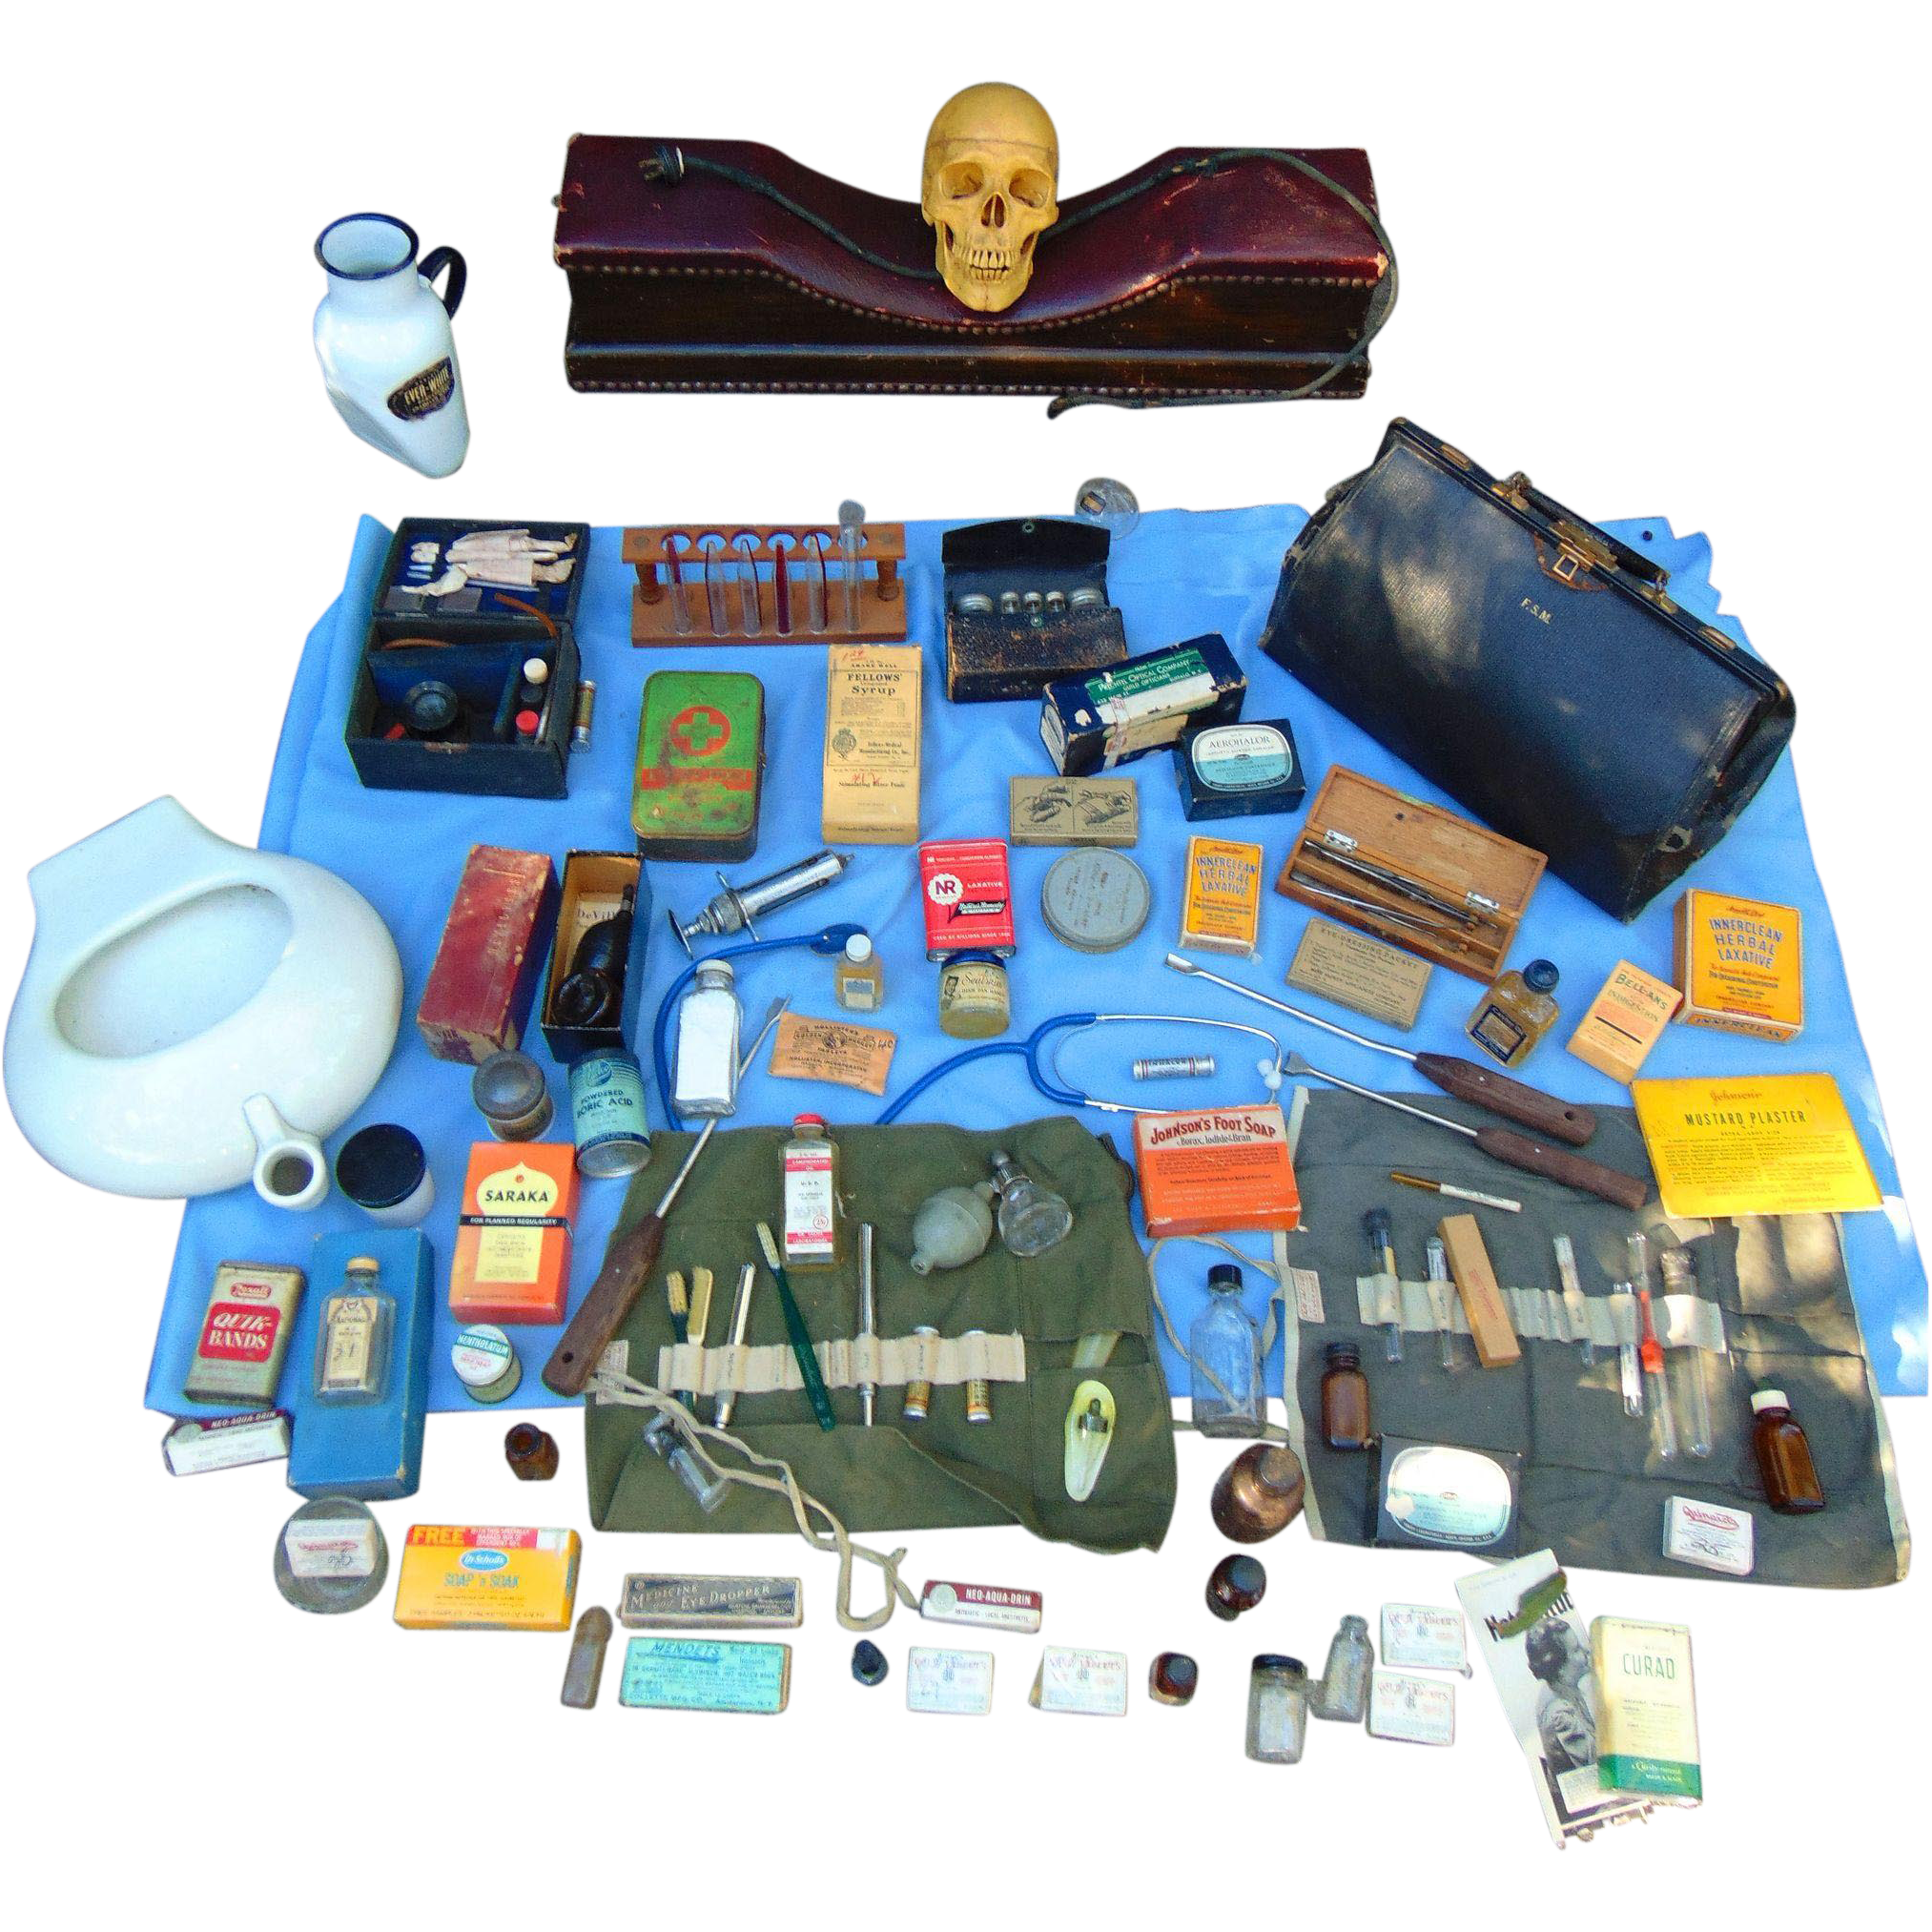 Country Doctors Medical Bag Surgical Tools,Instruments, Quaky Cures and Inventions.